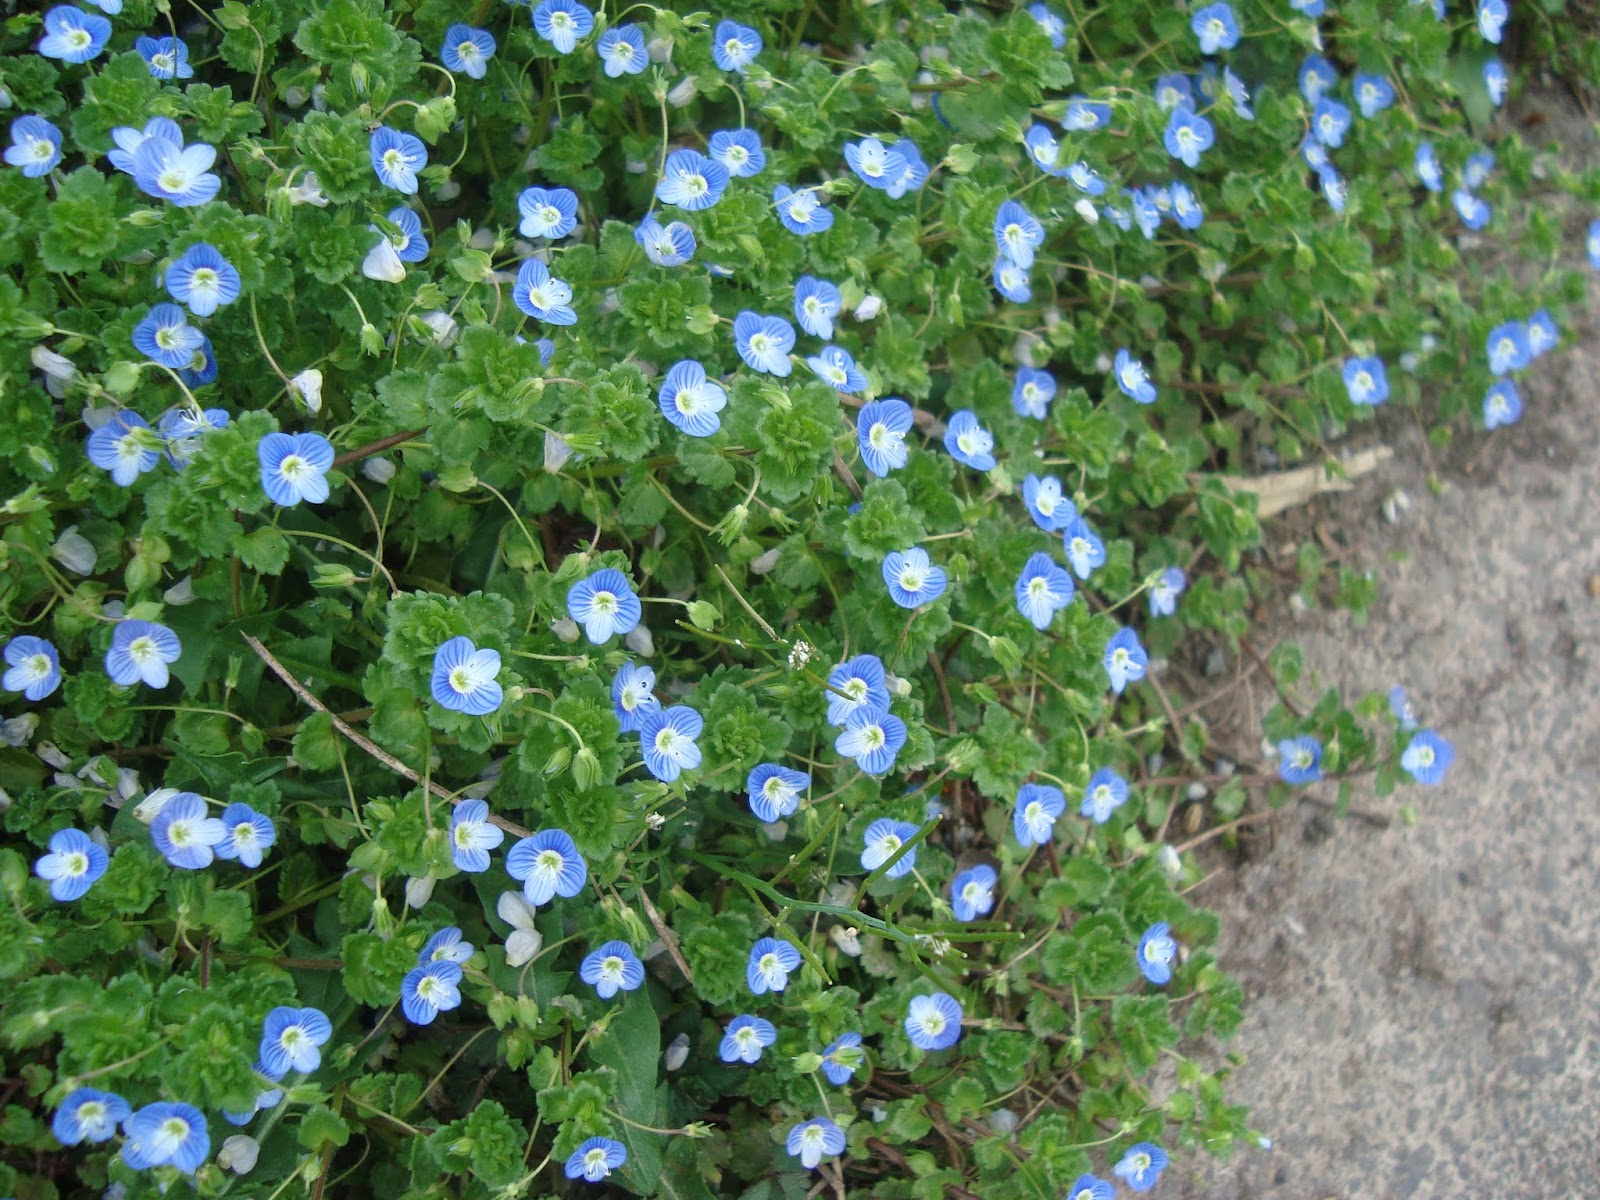 Blue flower weed in lawn sulechow random spring weed identification princeton nature notes spurge lawn weed identification identify weeds photos tiny blue flowers magnified 3x izmirmasajfo